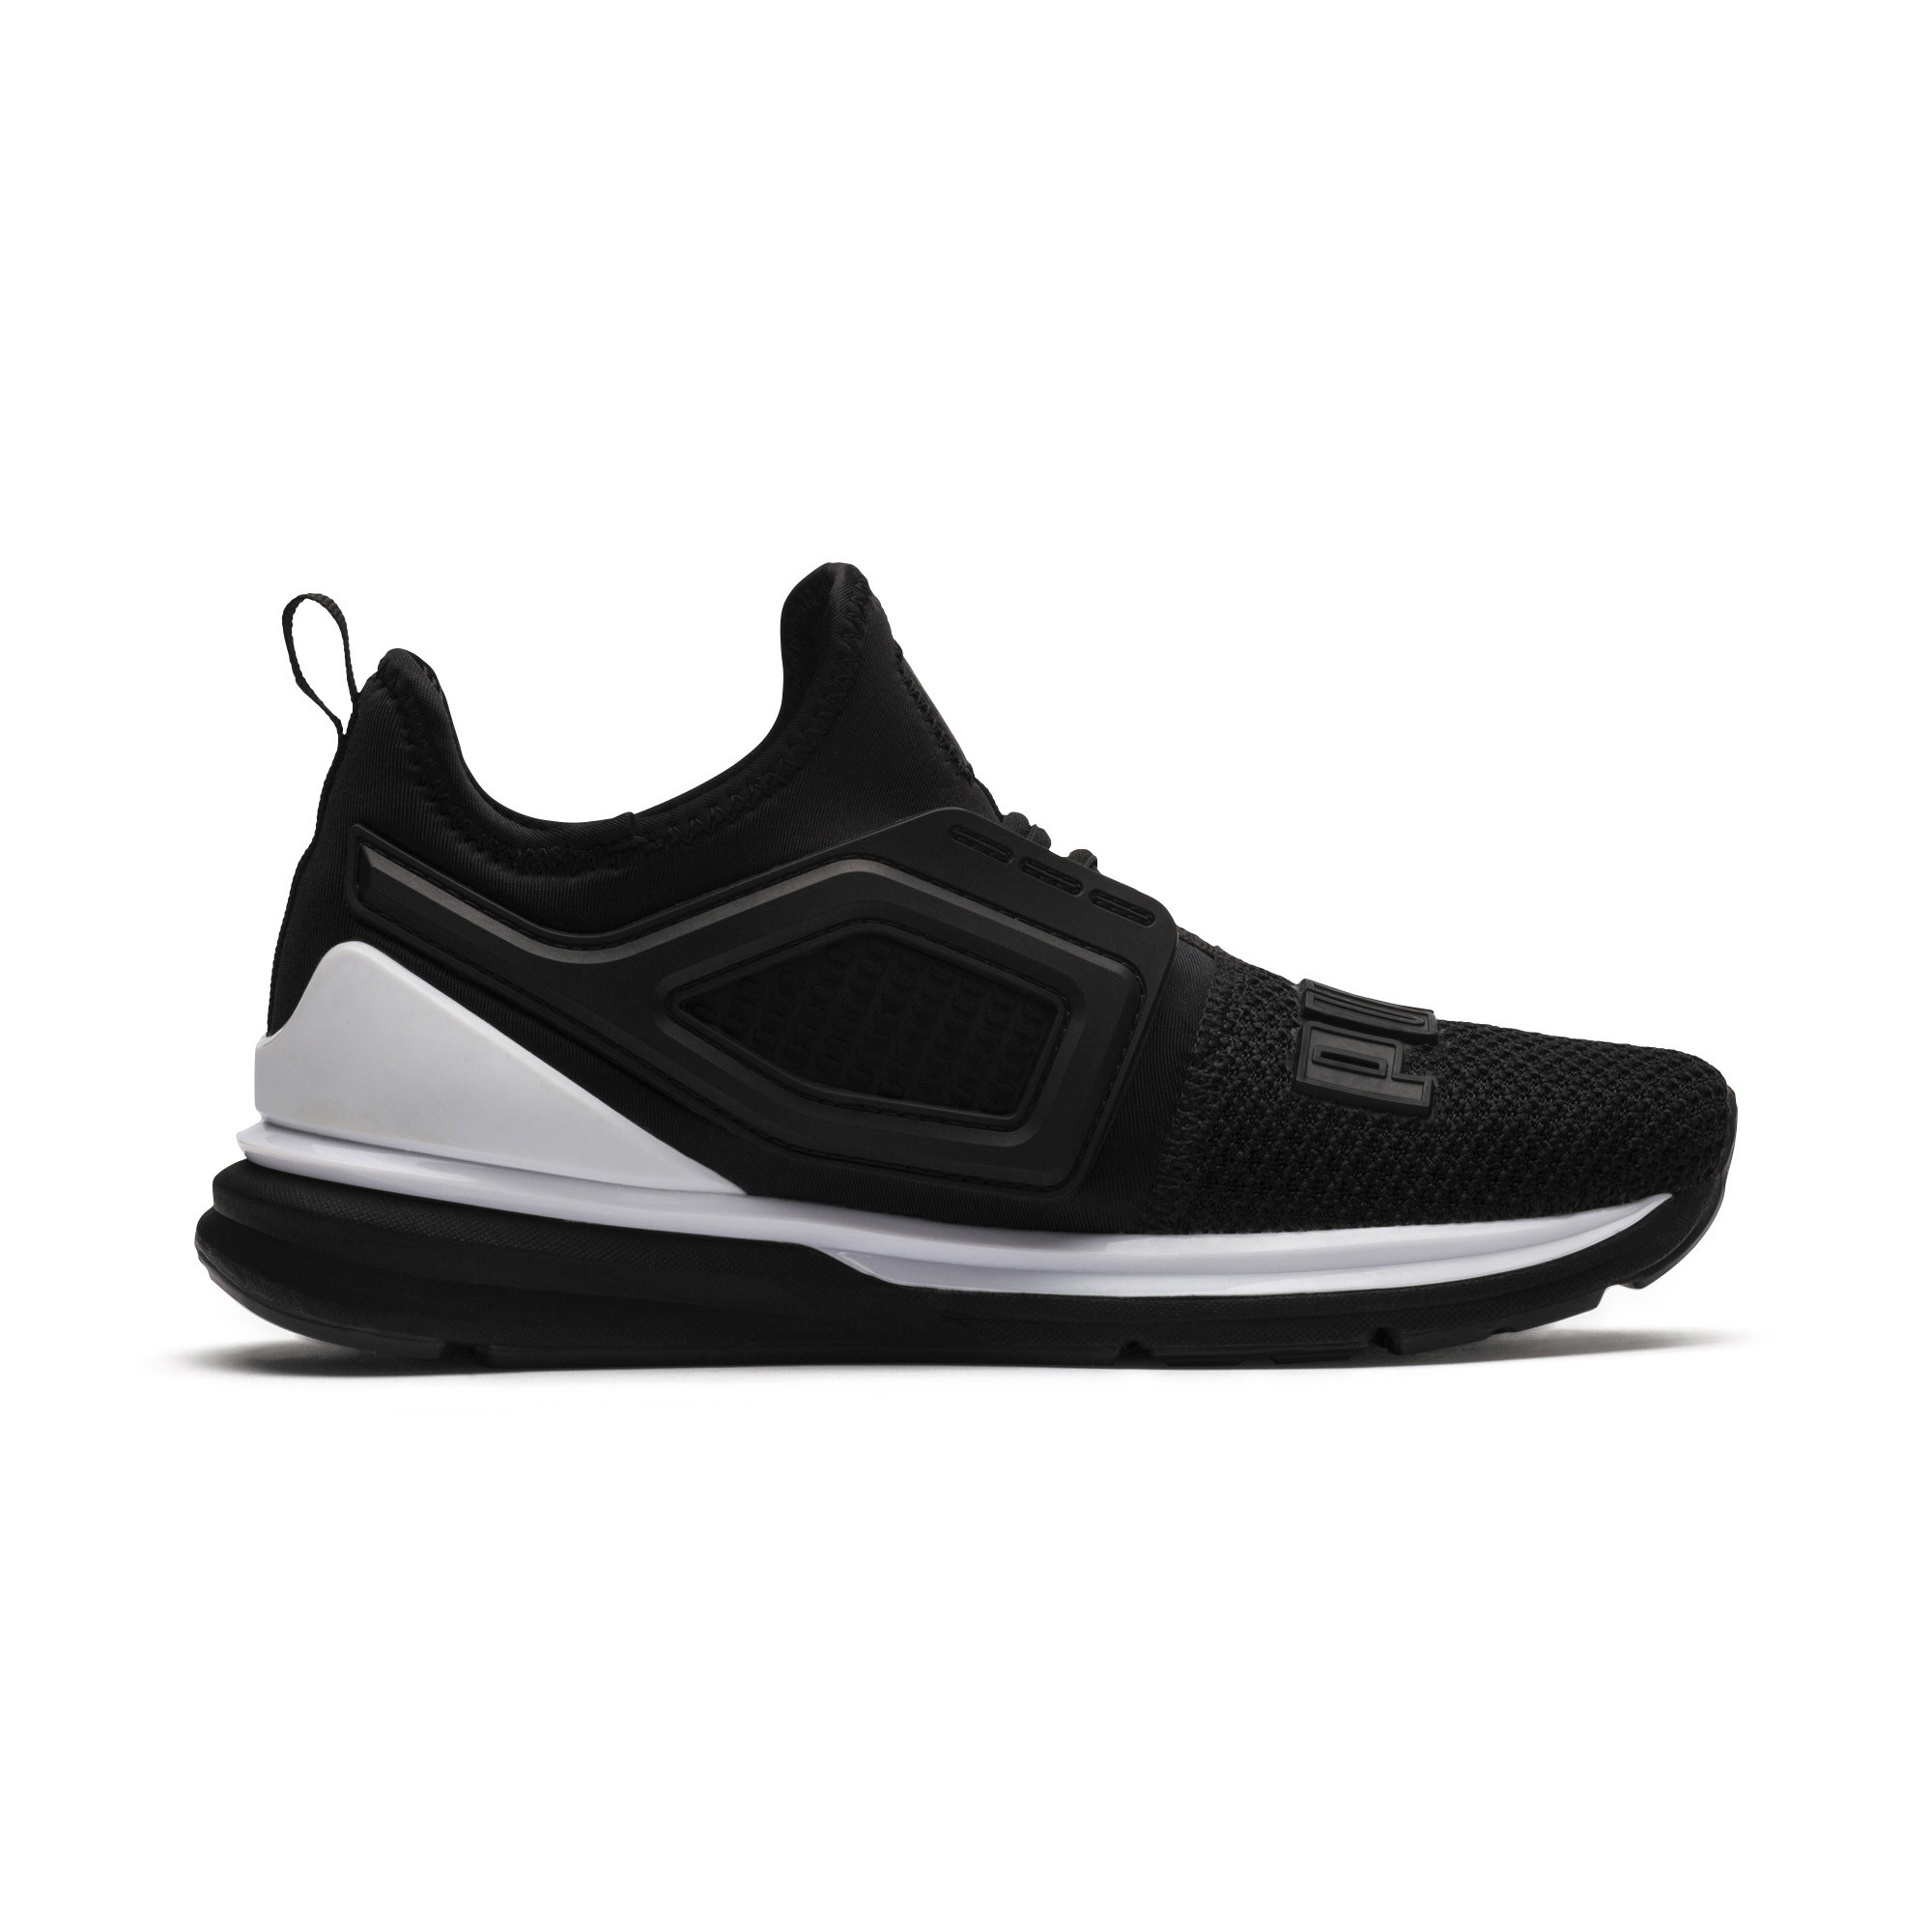 low priced 67a94 71933 Details about PUMA IGNITE Limitless 2 Women's Running Shoes Women Shoe  Running